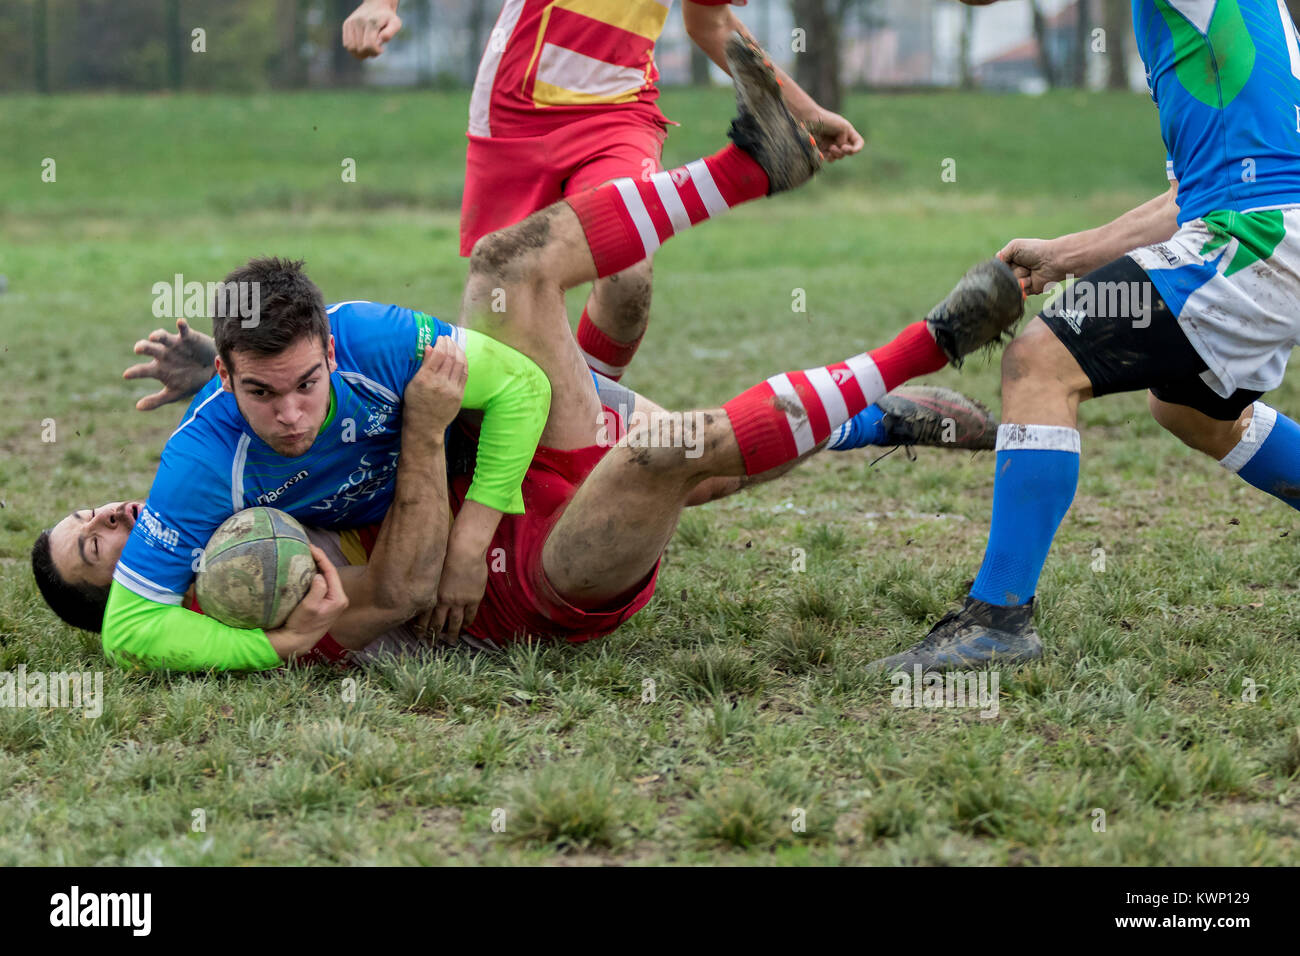 ZAGREB, CROATIA - NOVEMBER 18, 2017: Rugby match between Rugby club Mladost and Rugby club Ljubljana.  Rugby players Stock Photo